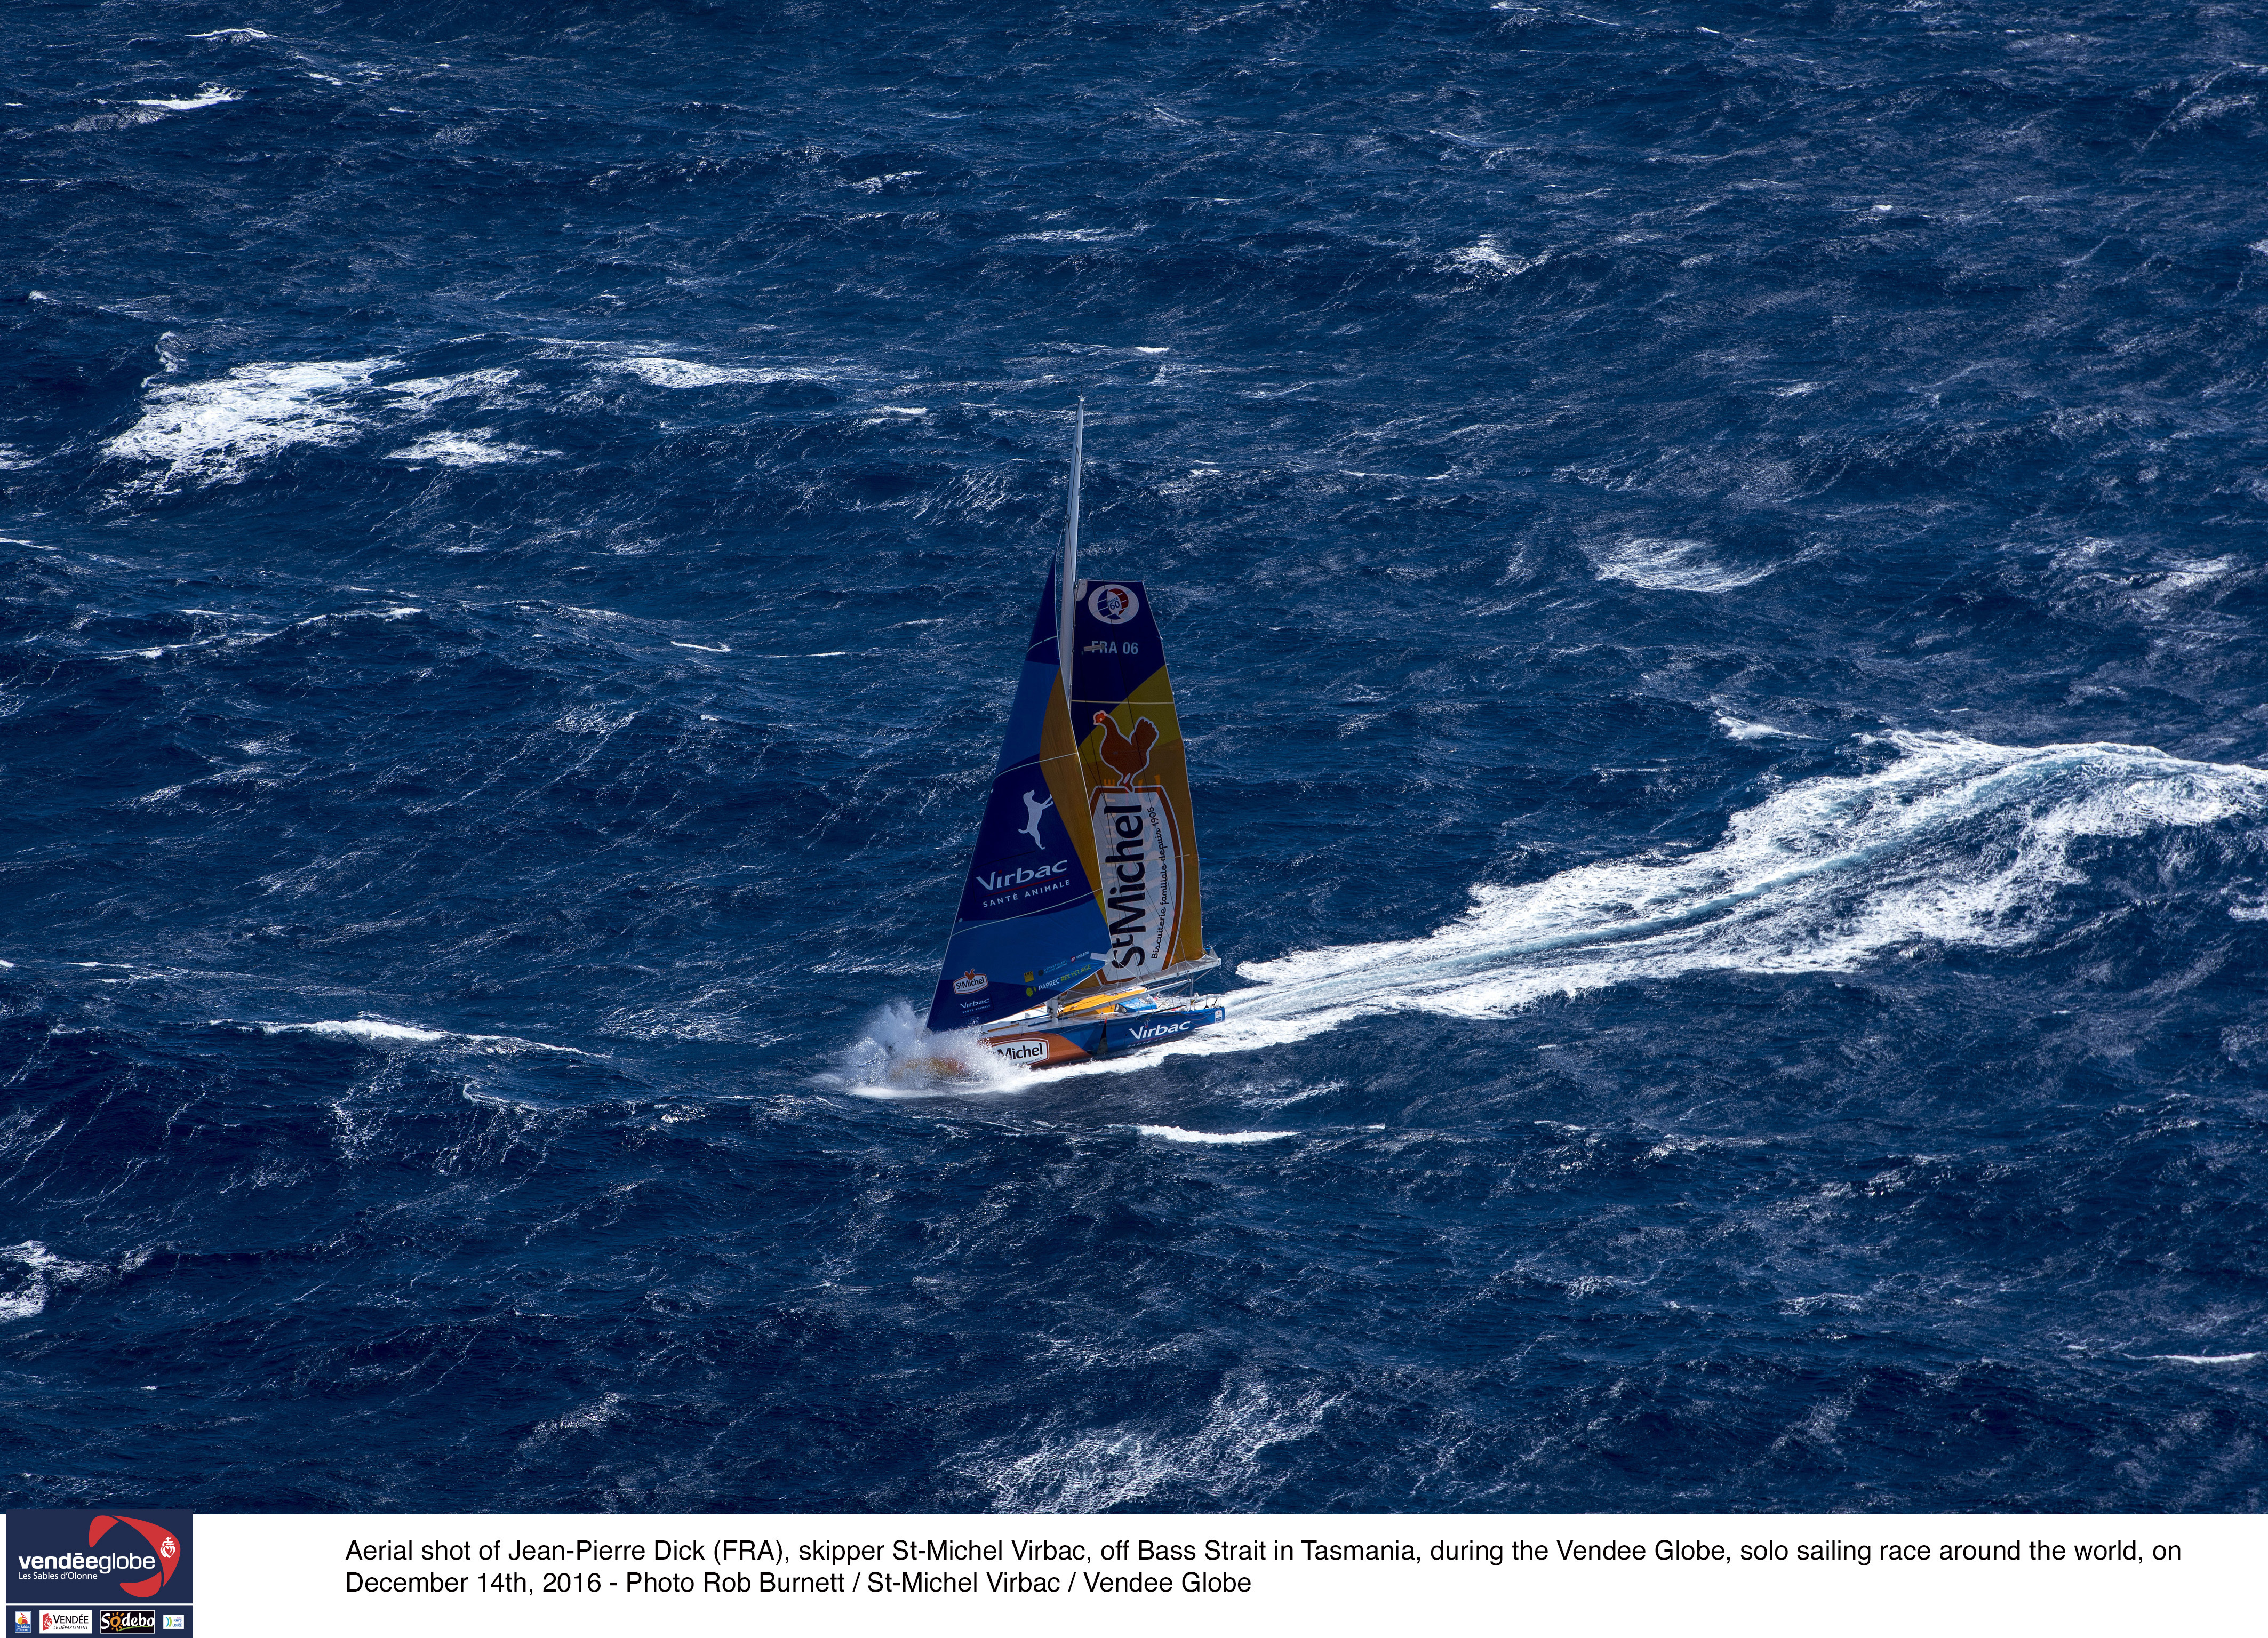 Aerial shot of Jean-Pierre Dick (FRA), skipper St-Michel Virbac, off Bass Strait in Tasmania, during the Vendee Globe, solo sailing race around the world, on December 14th, 2016 - Photo Rob Burnett / St-Michel Virbac / Vendee Globe Photo aérienne de Jean-Pierre Dick (FRA), skipper St-Michel Virbac, lors de son passage au détroit de Bass, Tasmanie, durant la course du Vendée Globe, le 14 Décembre 2016 - Photo Rob Burnett / St-Michel Virbac / Vendee Globe